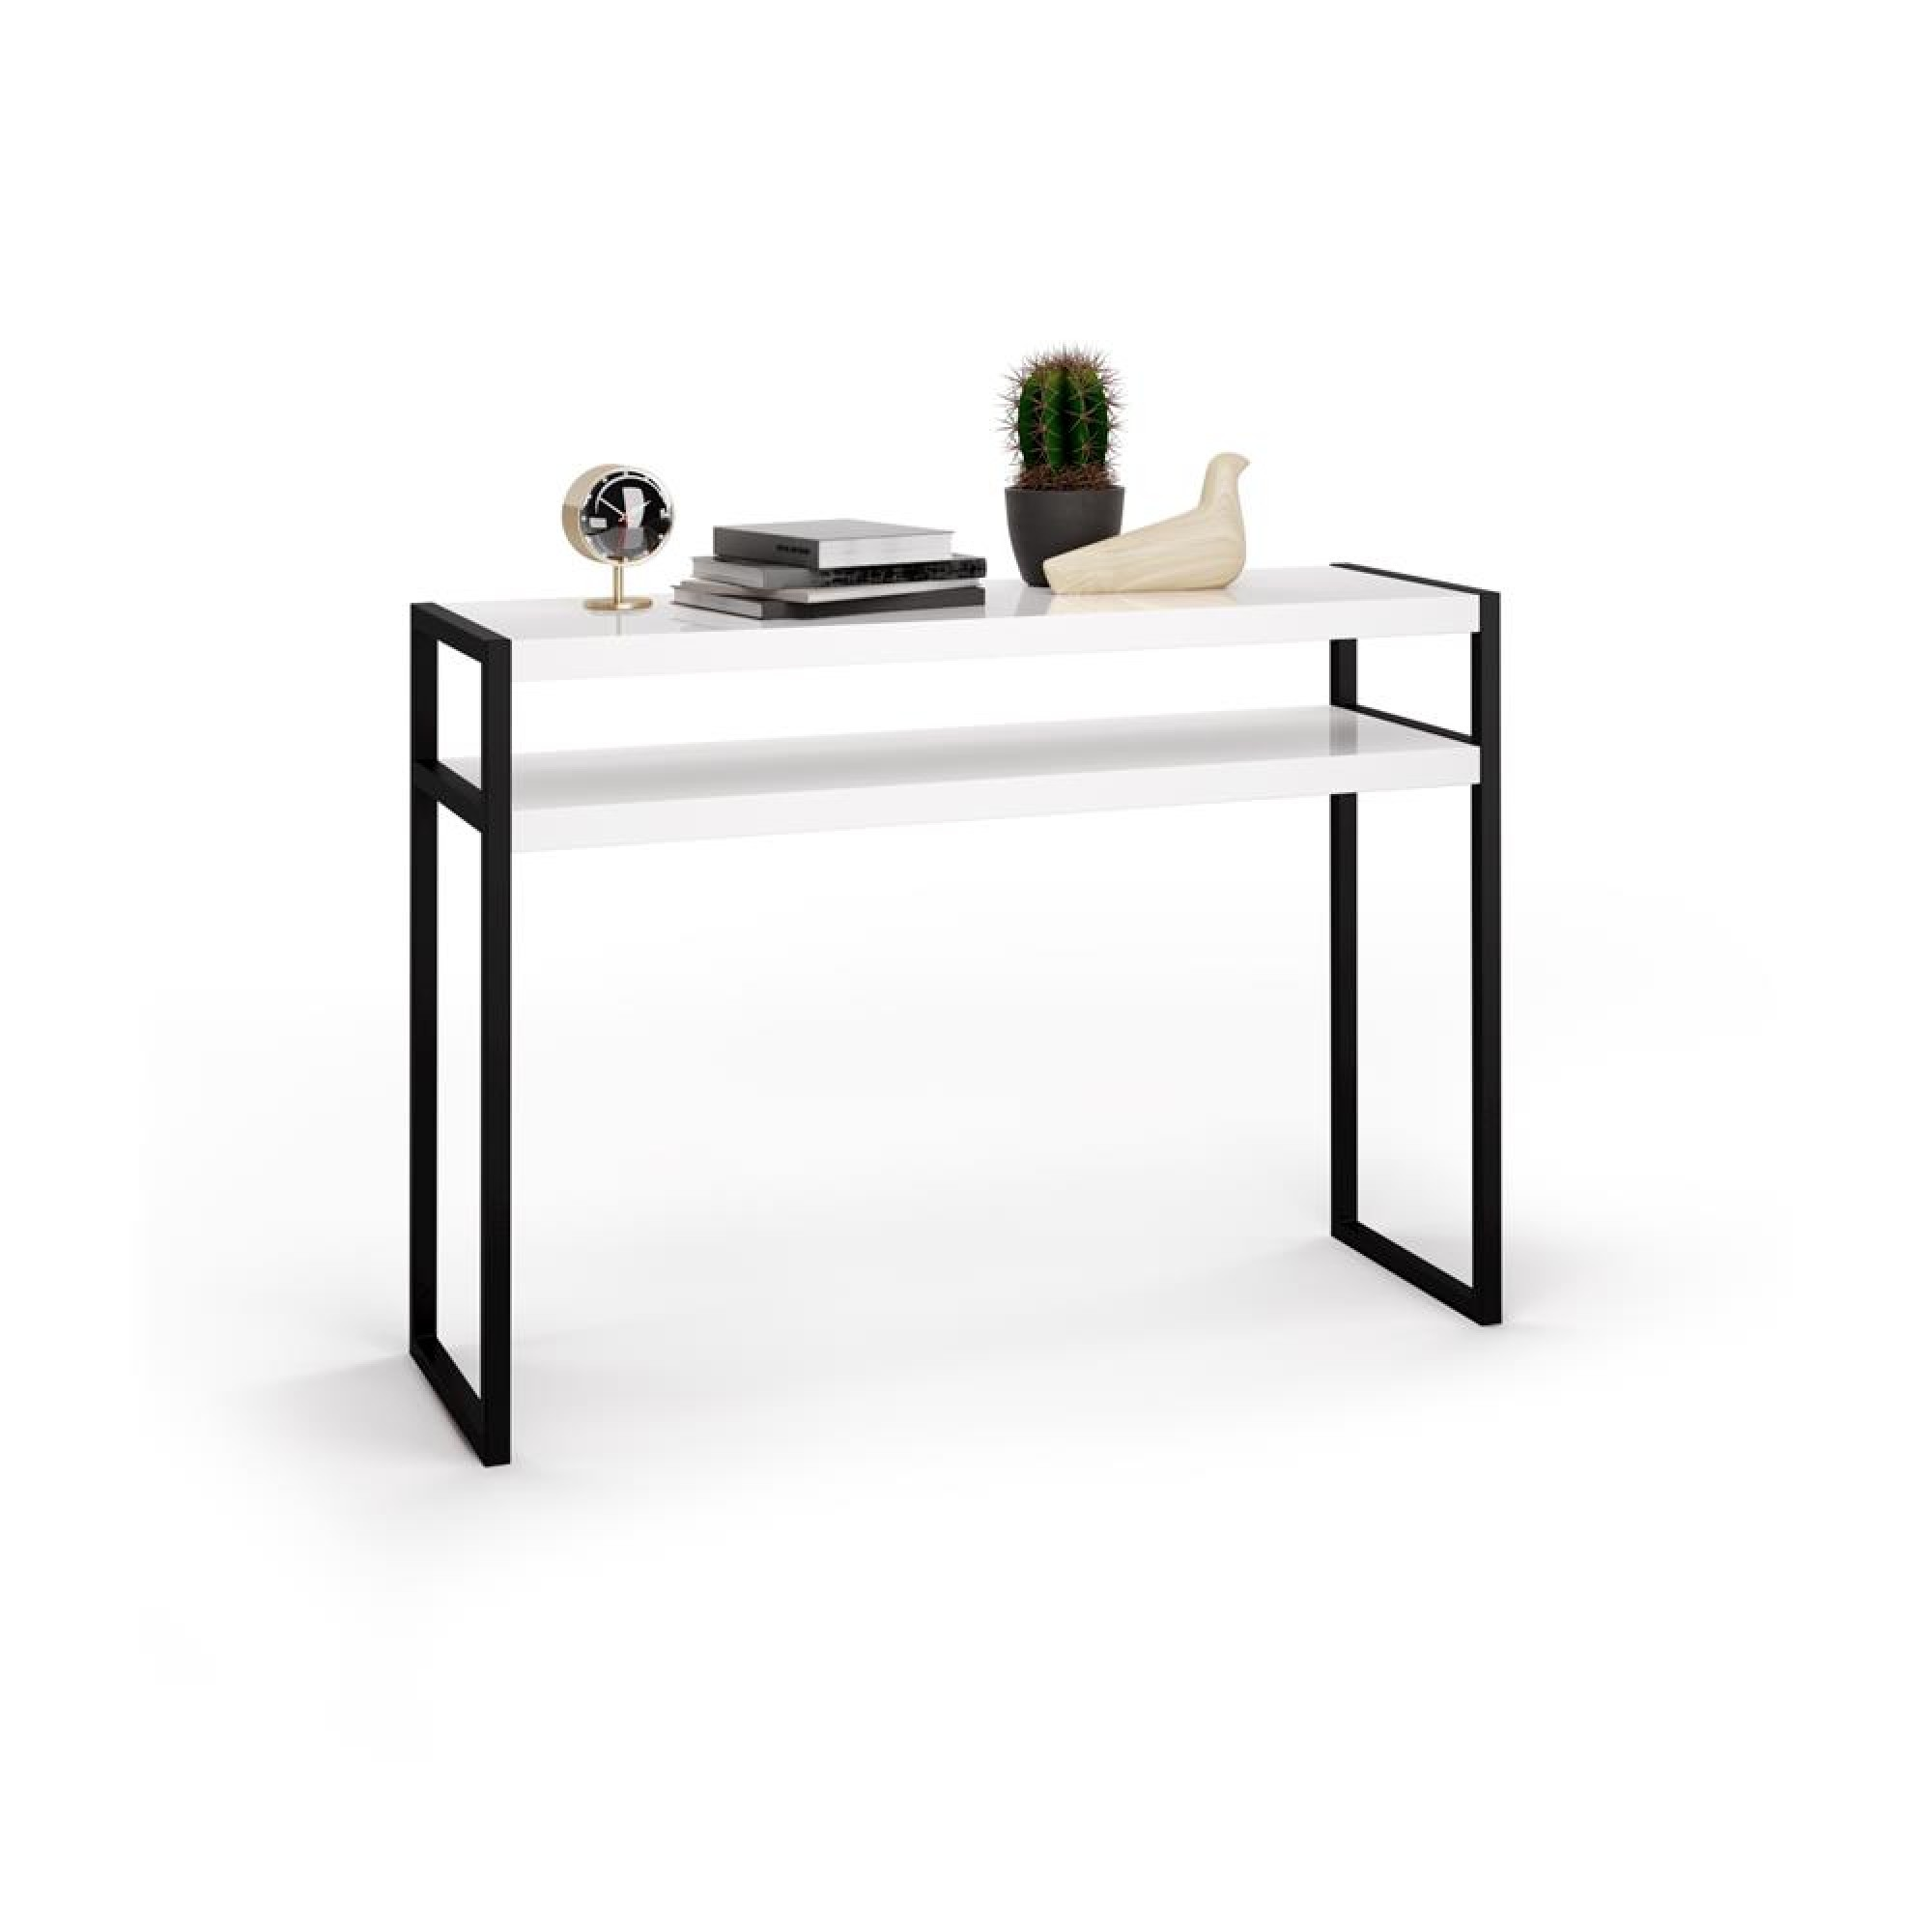 Entrance table with metal structure and wooden countertops, glossy white - Luxury